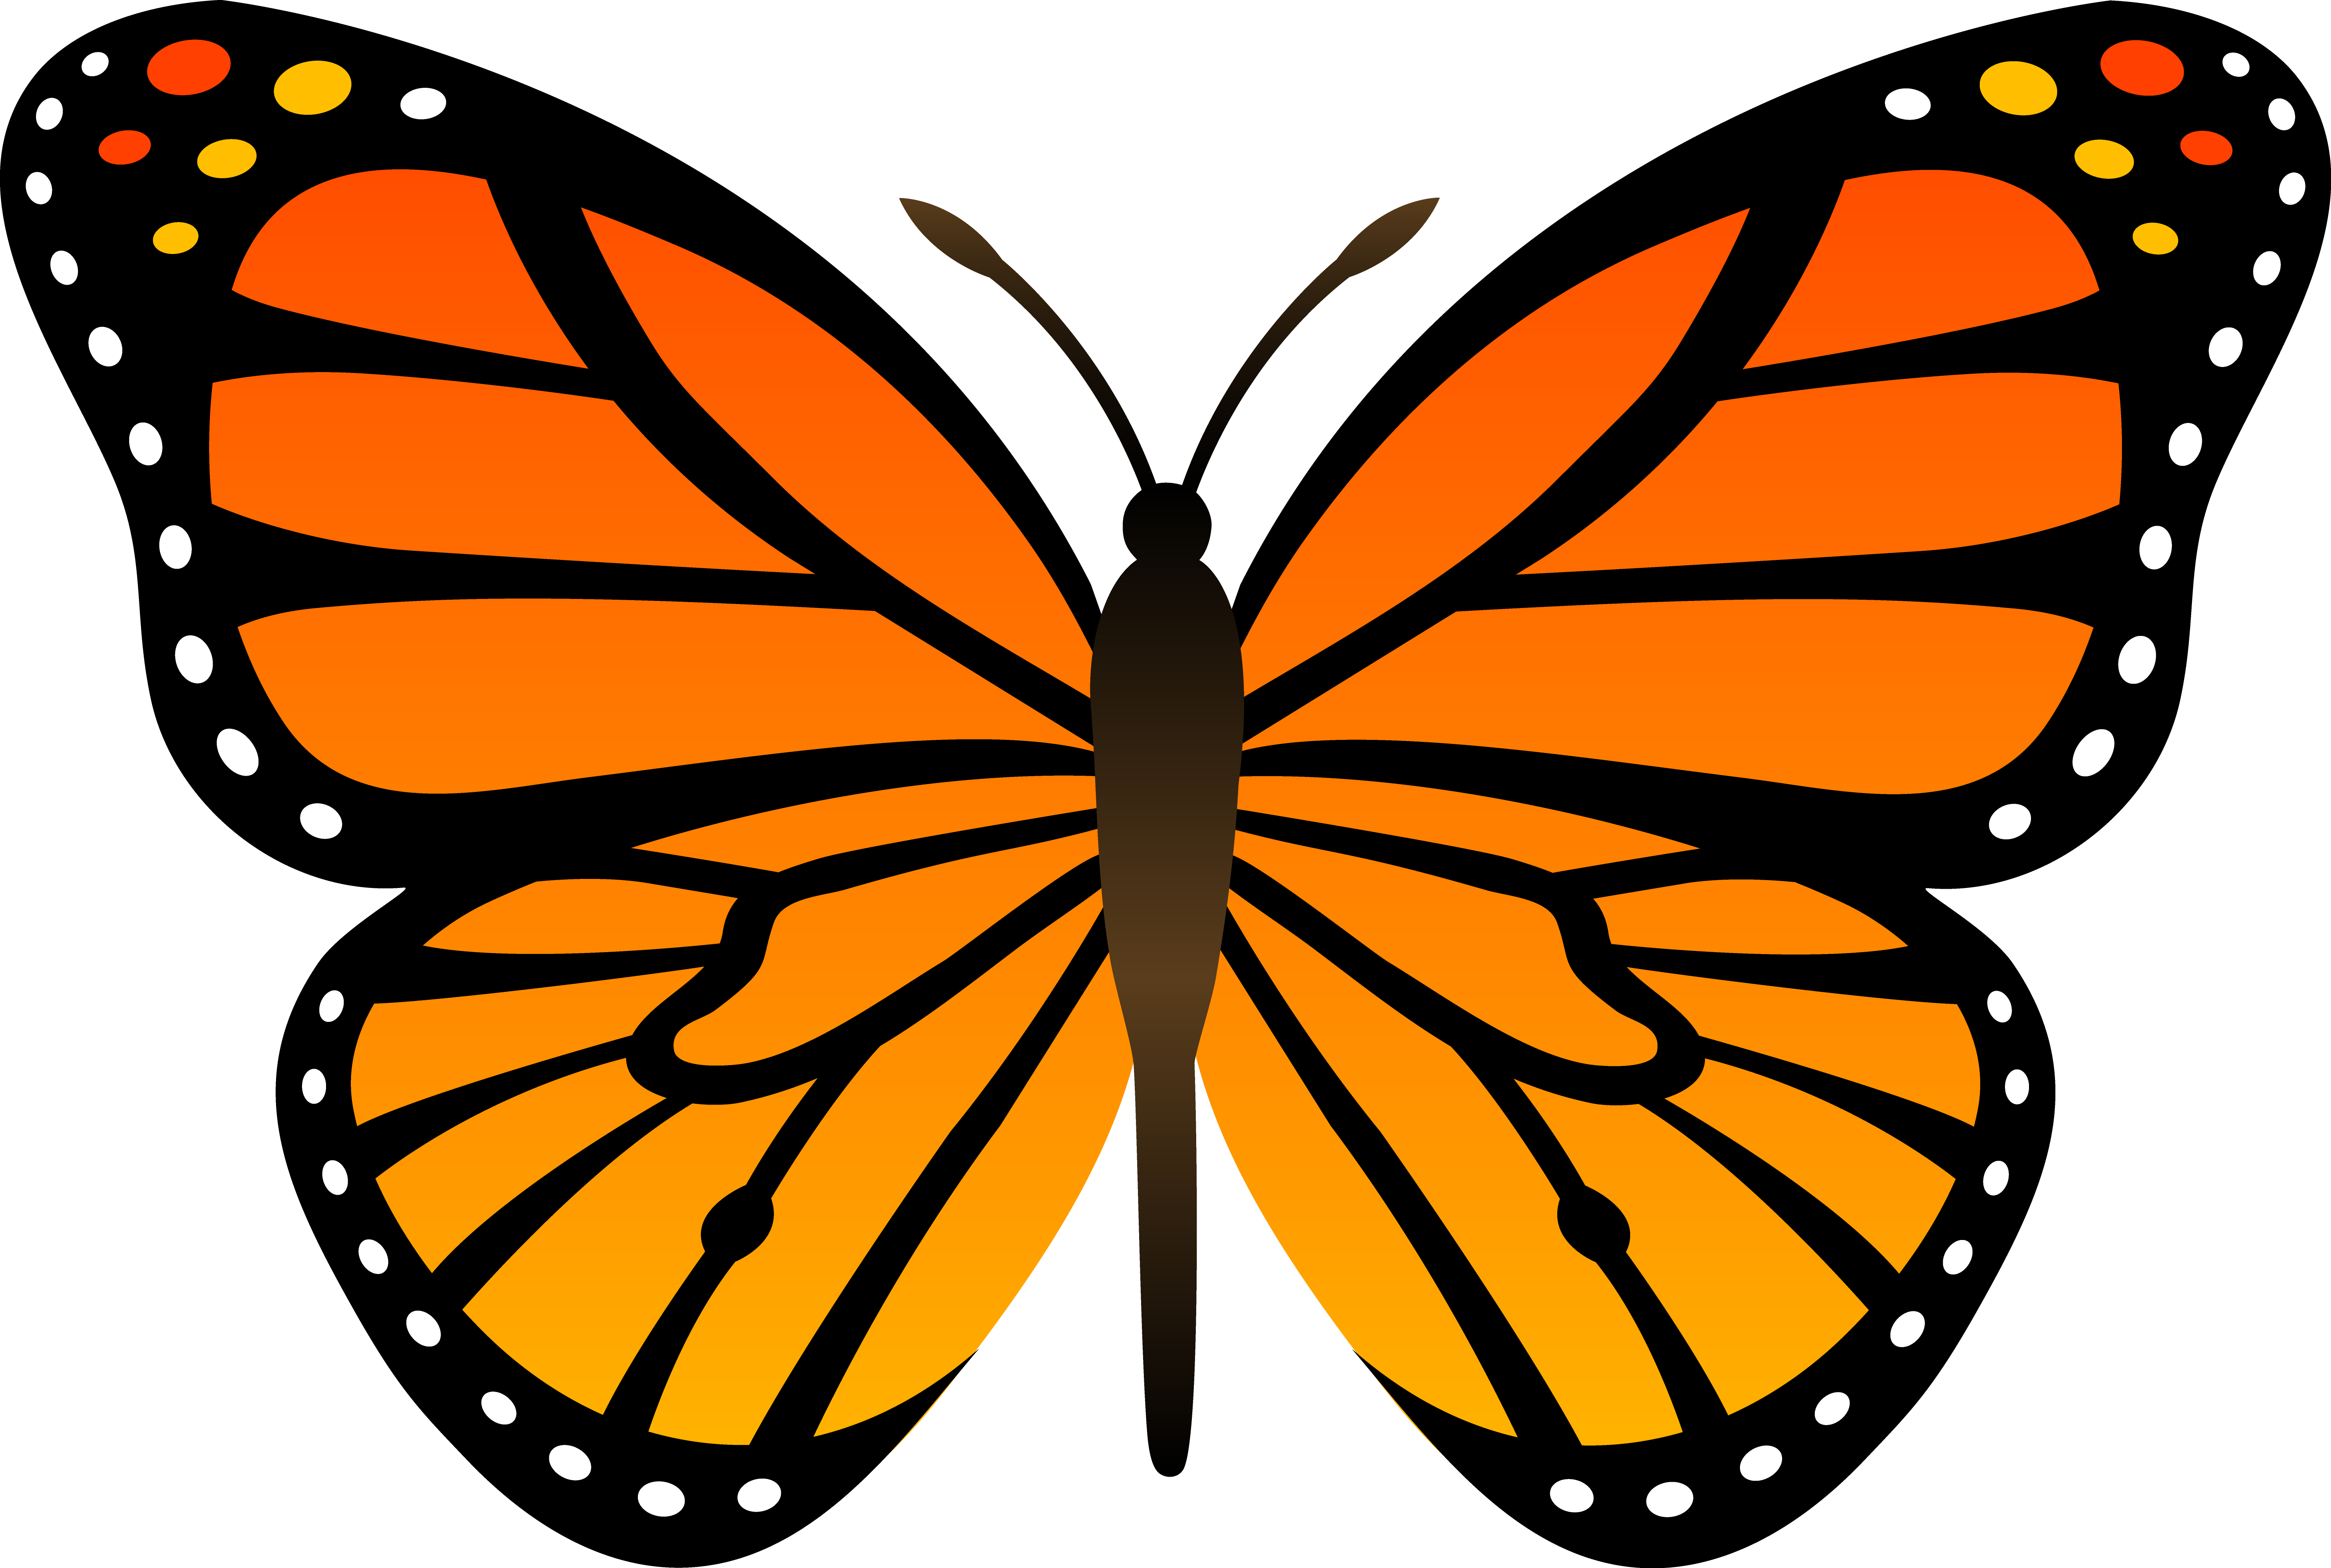 Monarch butterfly free . Frog clipart symmetrical